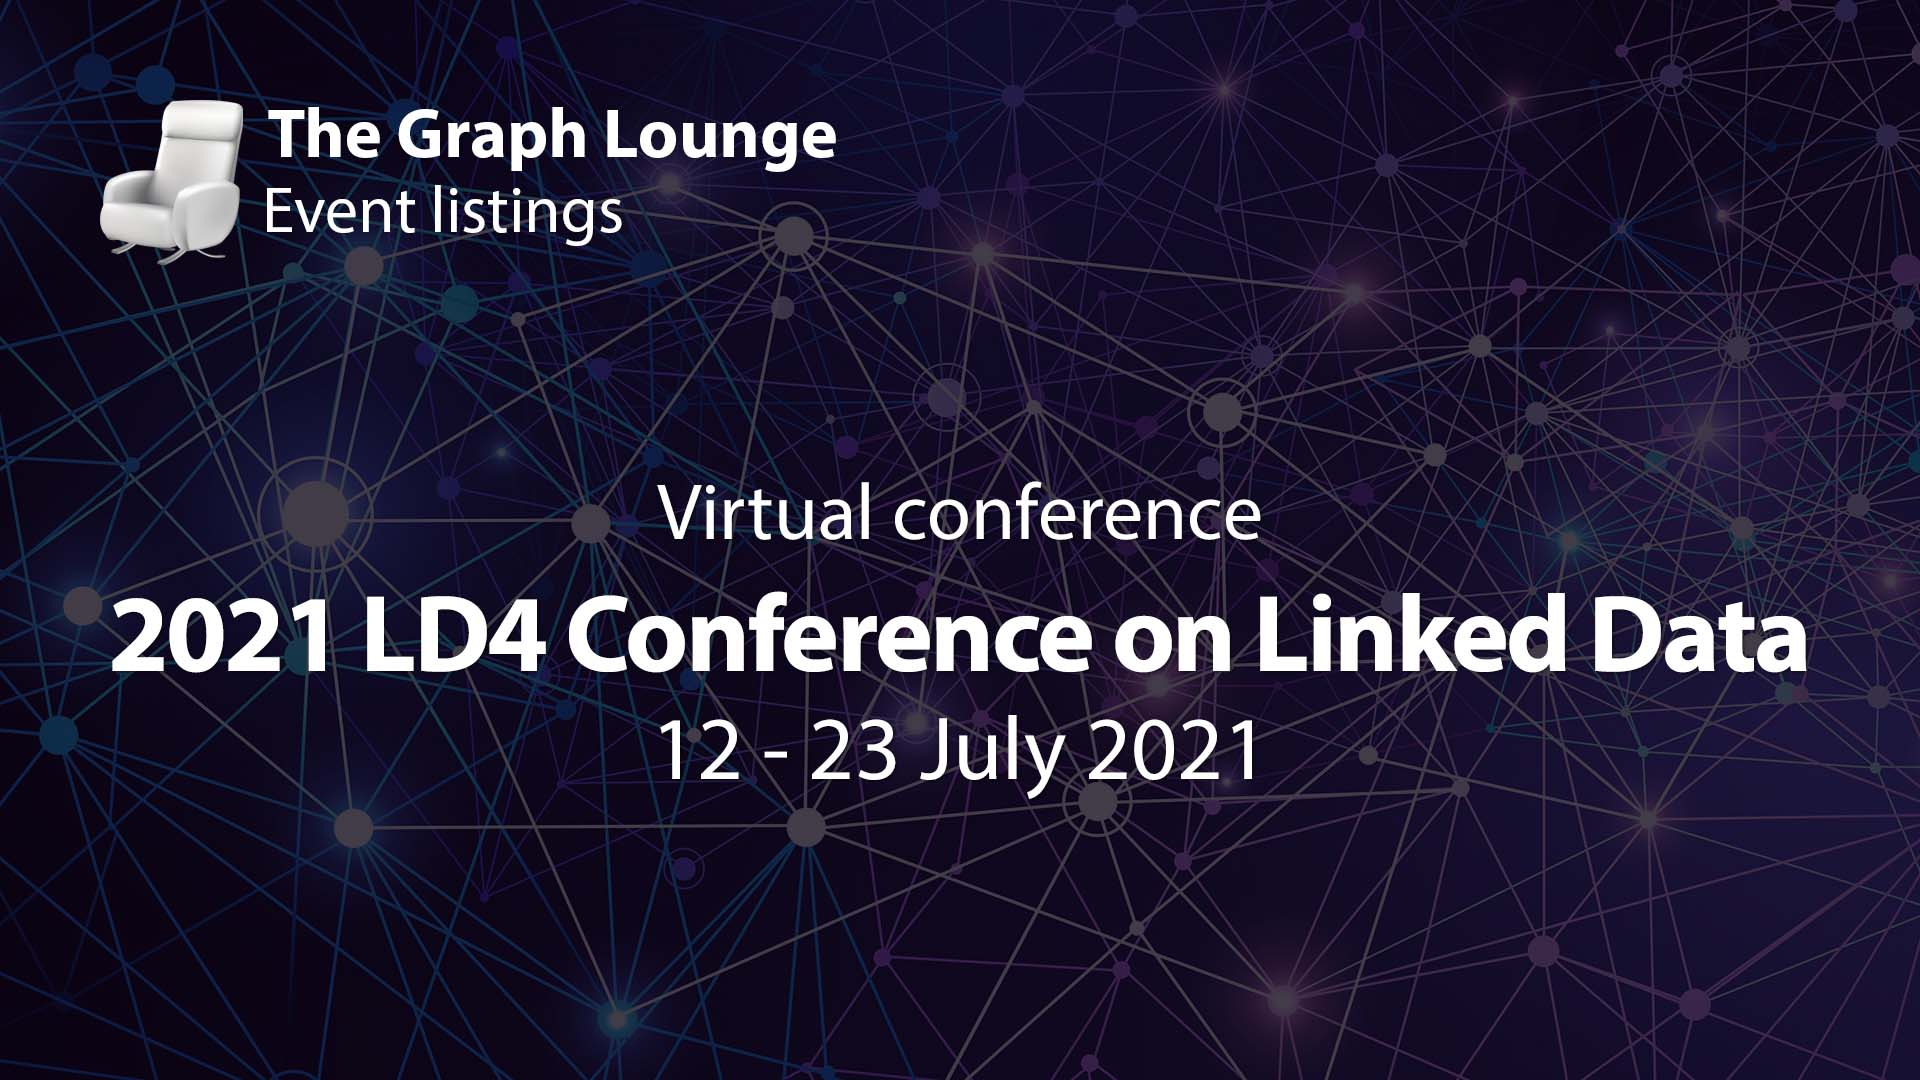 2021 LD4 Conference on Linked Data (Linked Data for Libraries 2021)